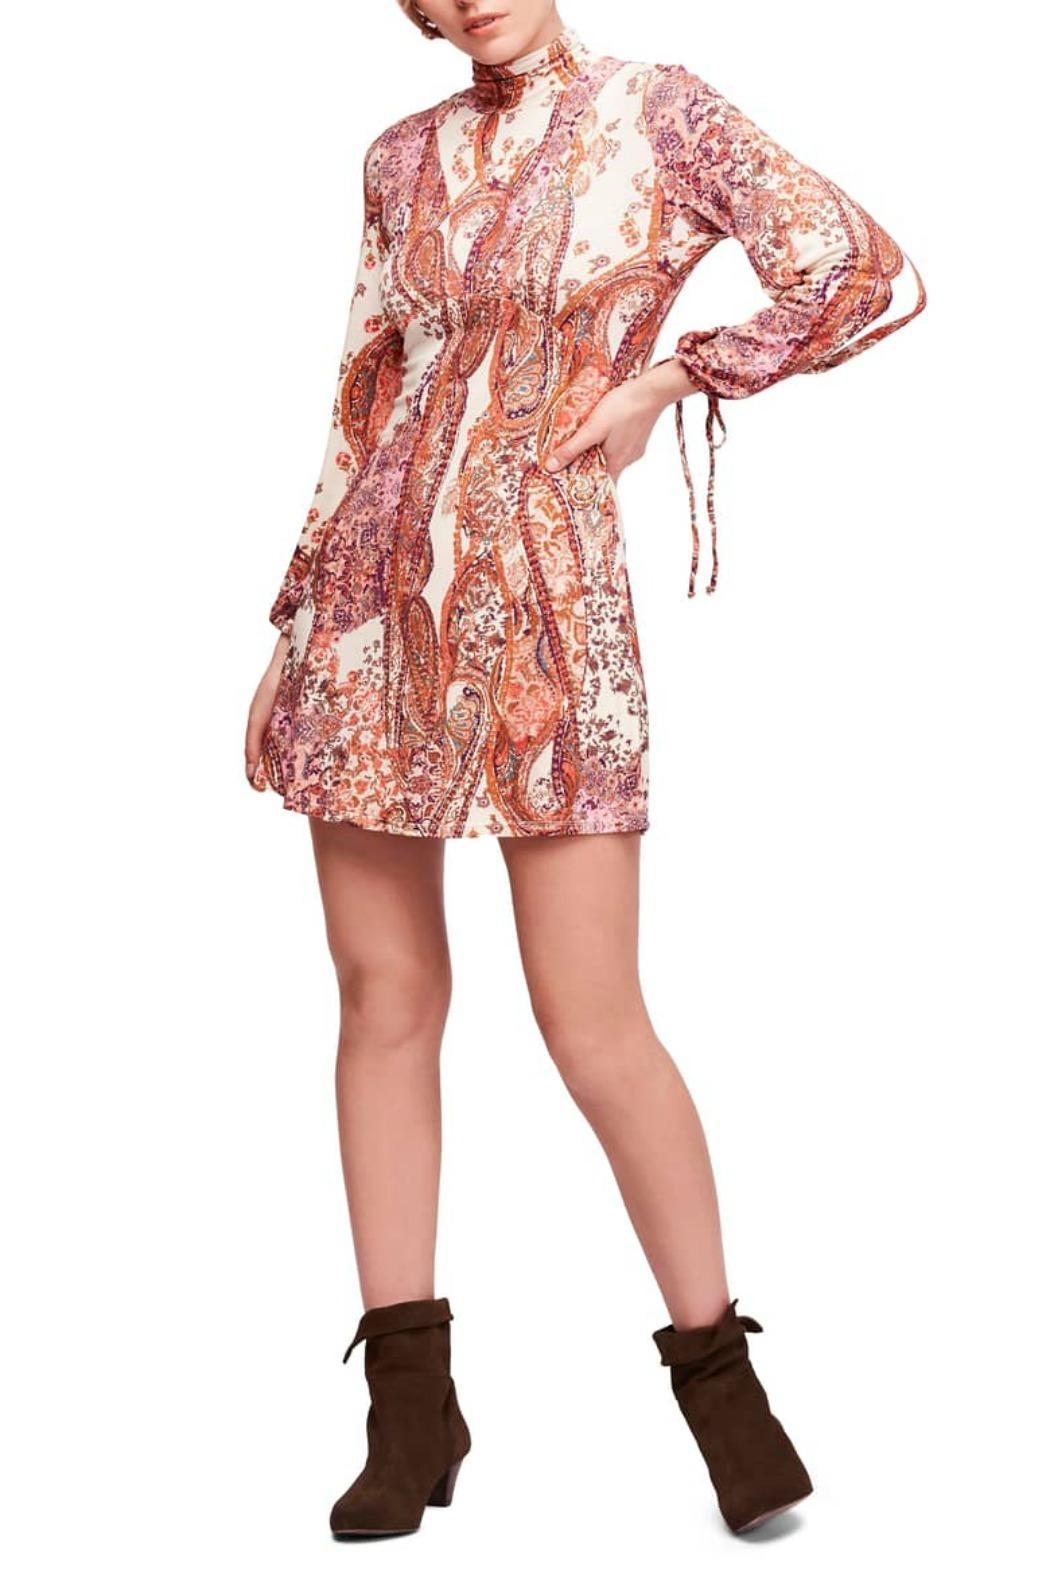 c9304855e9ca Free People Minidress from Orange County by Jeanni Champagne ...